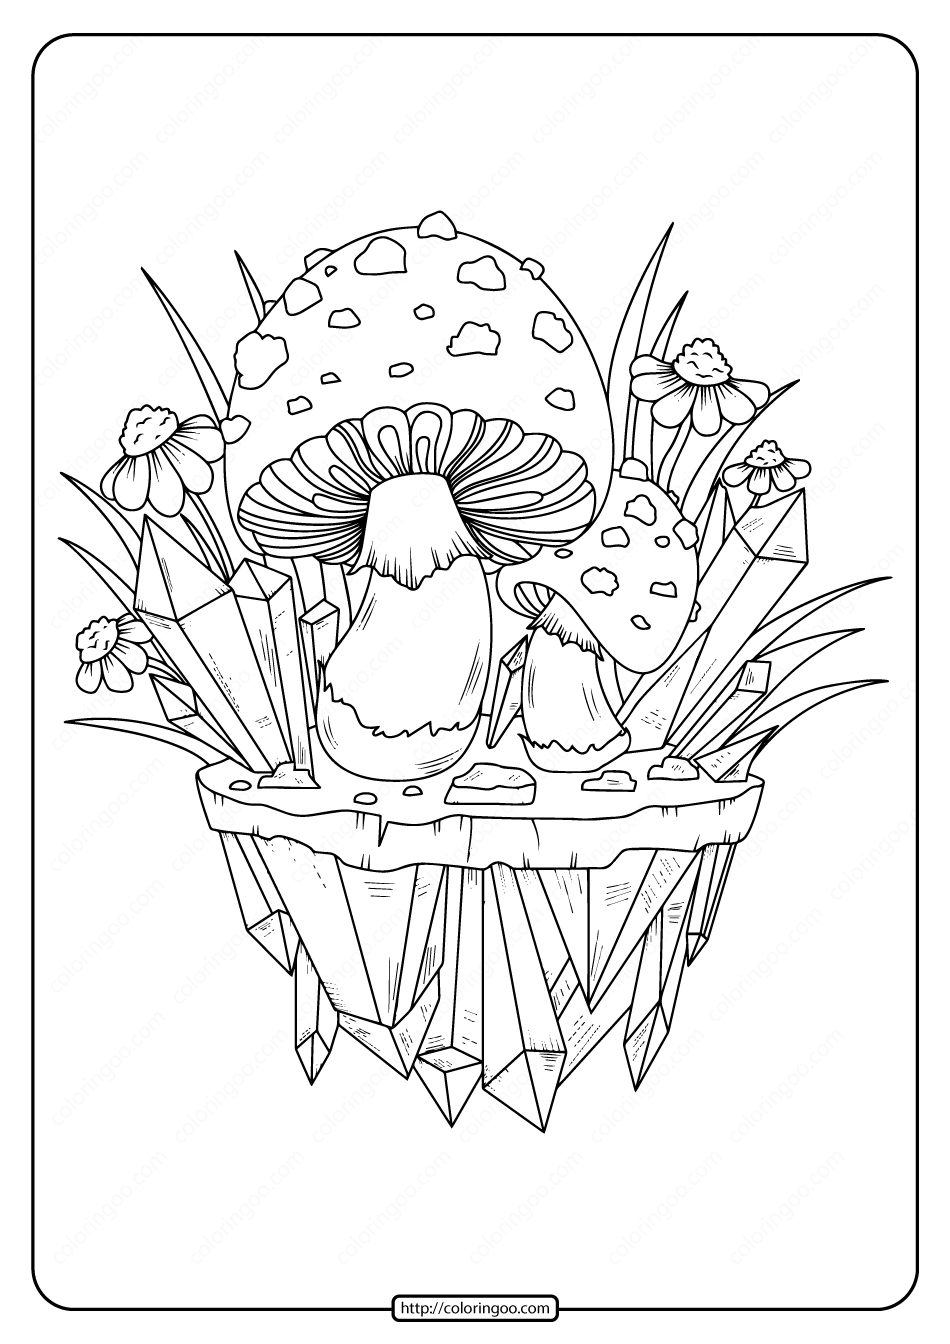 Printable Mushrooms Adult Coloring Page 02